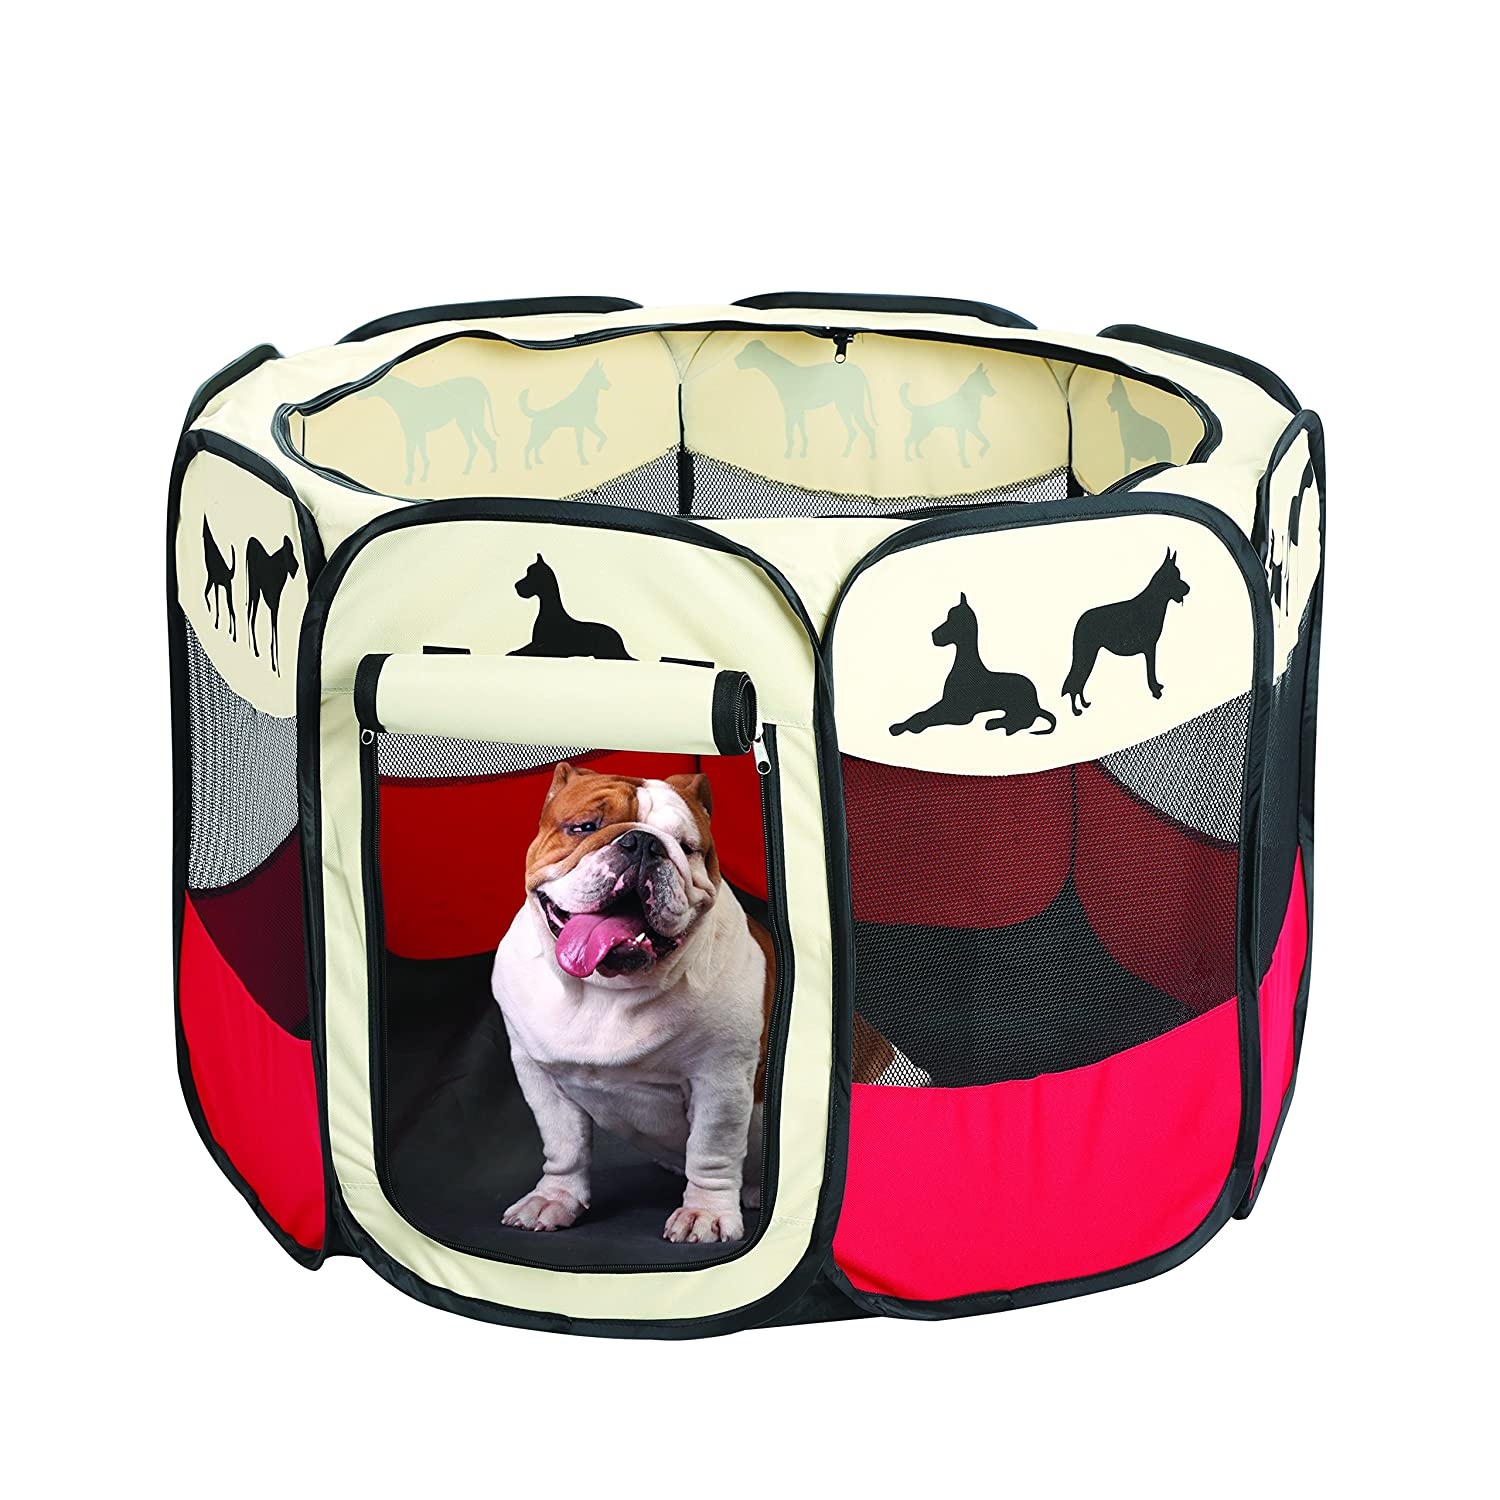 Astounding Etna Portable Foldable Pet Playpen Indoor Outdoor Dog Cat Puppy Exercise Pen Kennel Removable Mesh Shade Cover Dog Pop Up Silhouettes Pet Pen Gmtry Best Dining Table And Chair Ideas Images Gmtryco